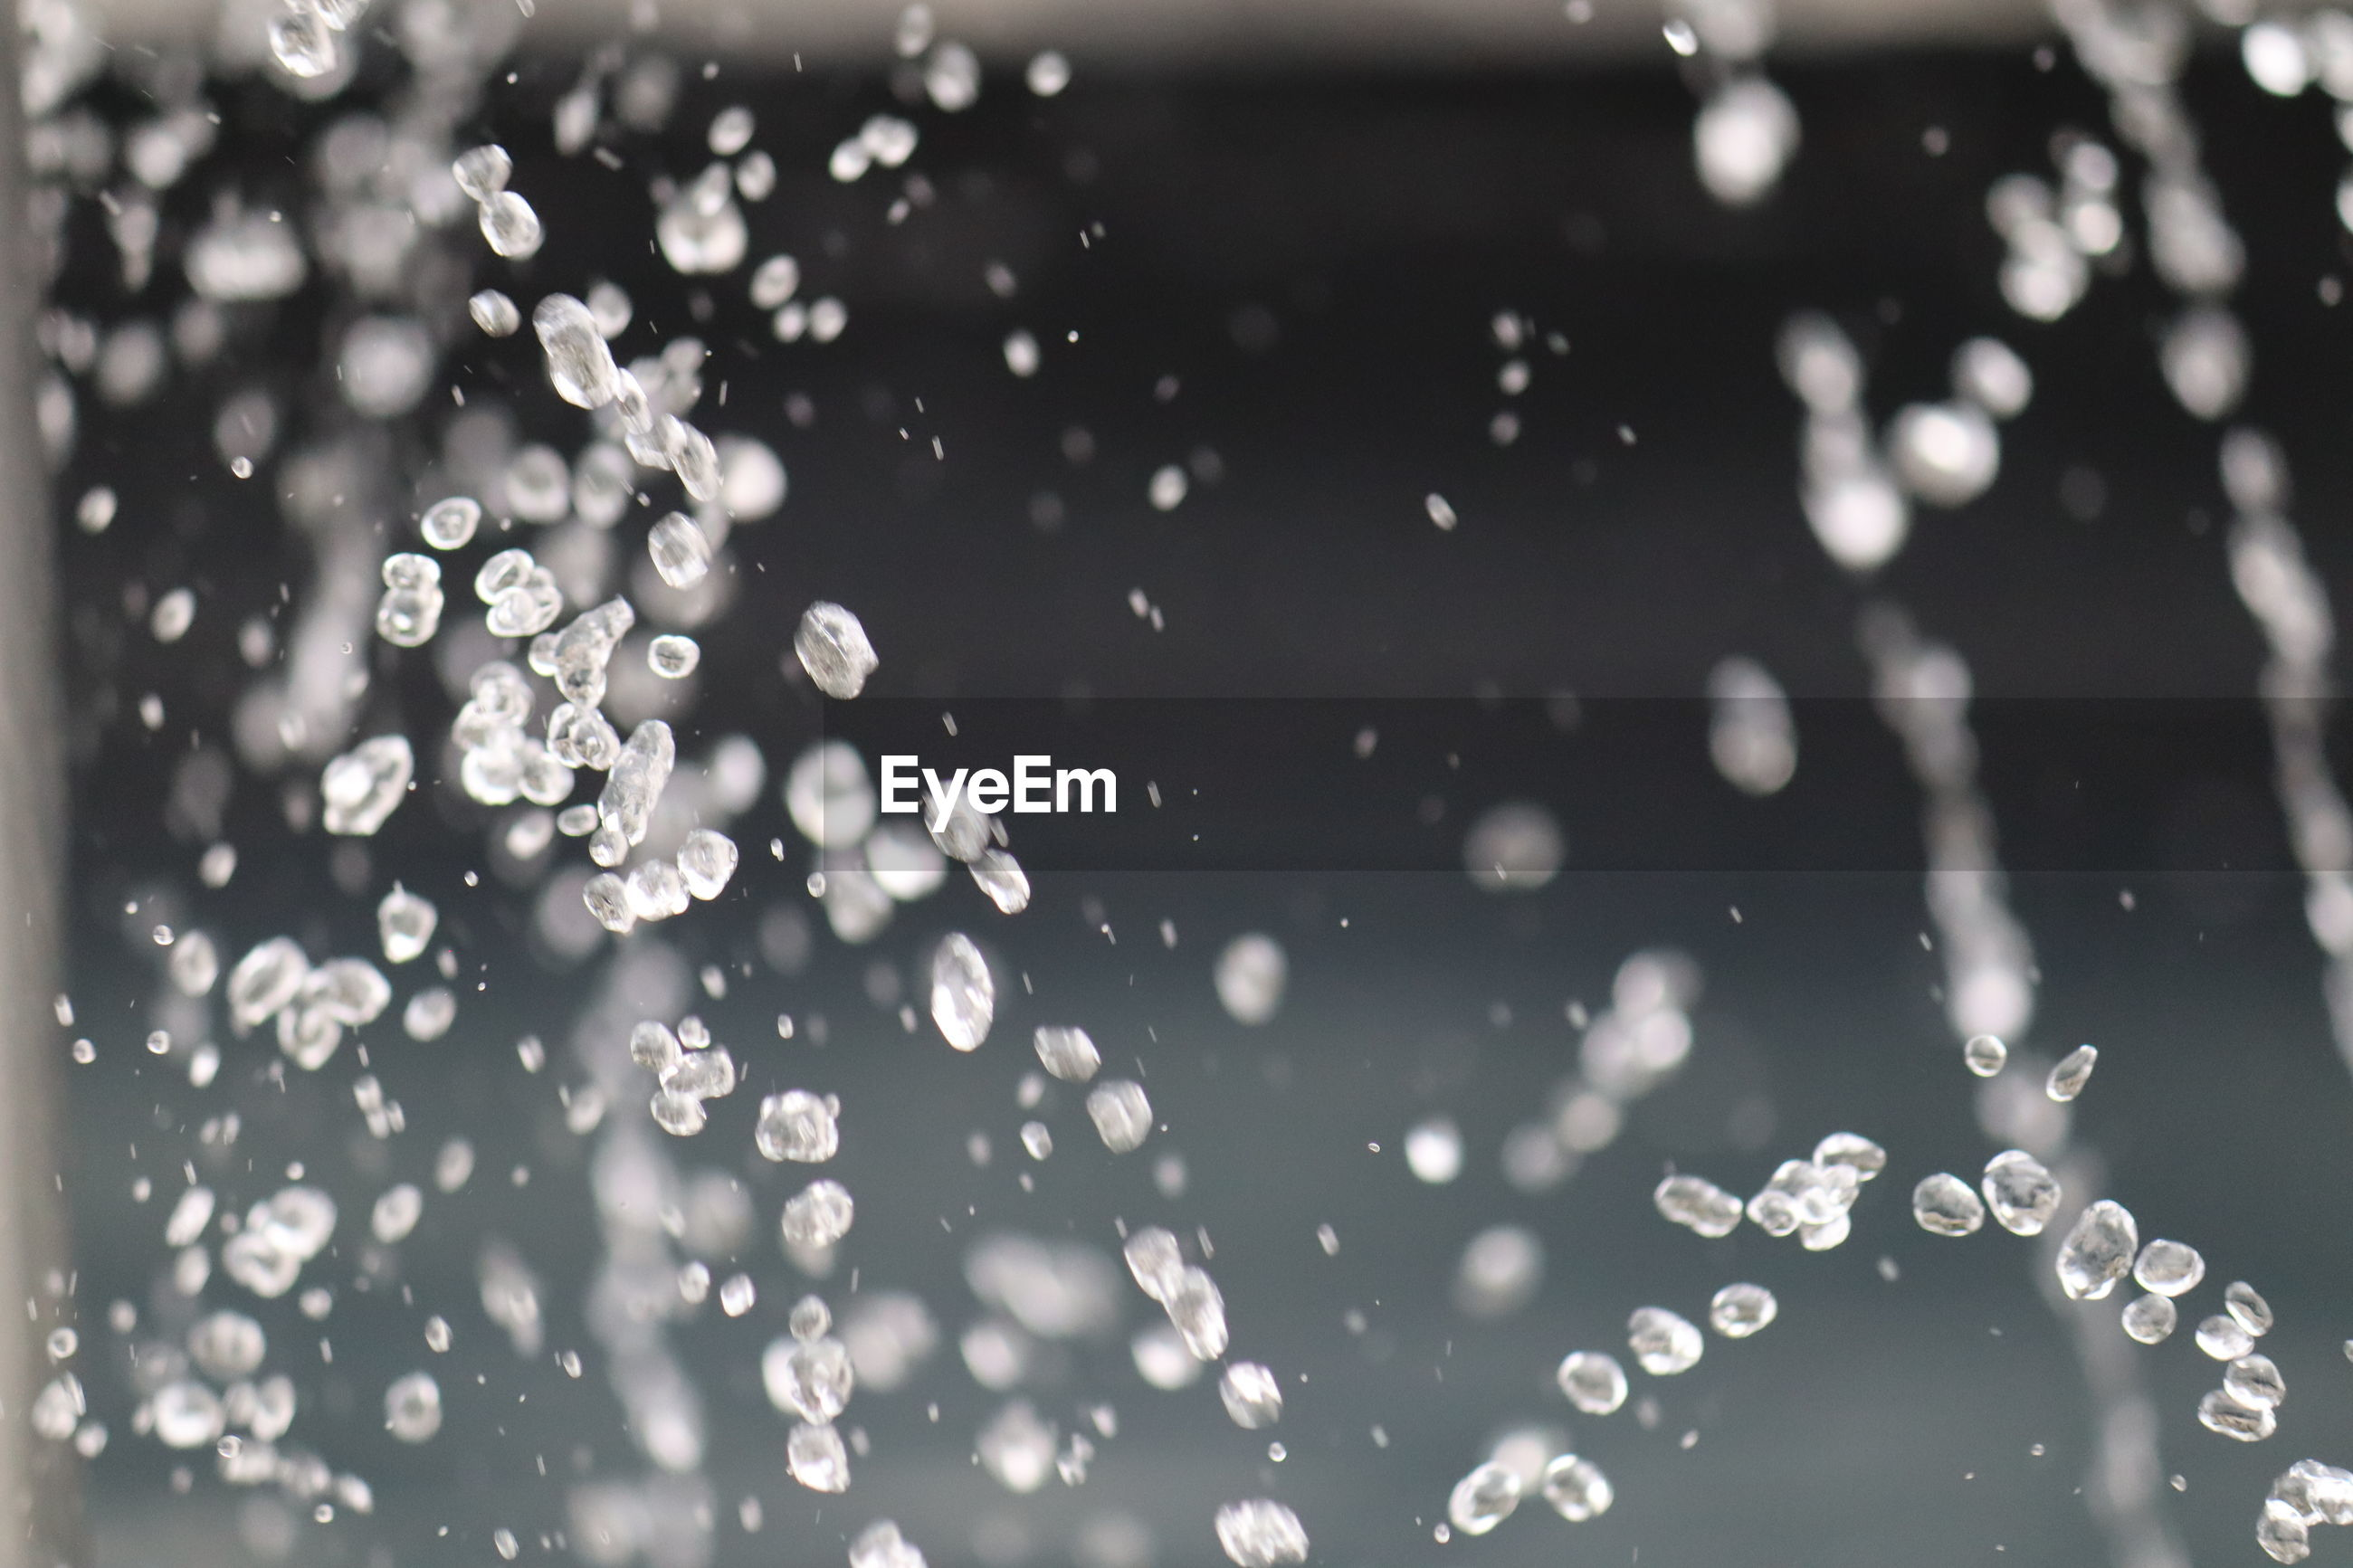 DEFOCUSED IMAGE OF WATER DROPS ON BLACK BACKGROUND